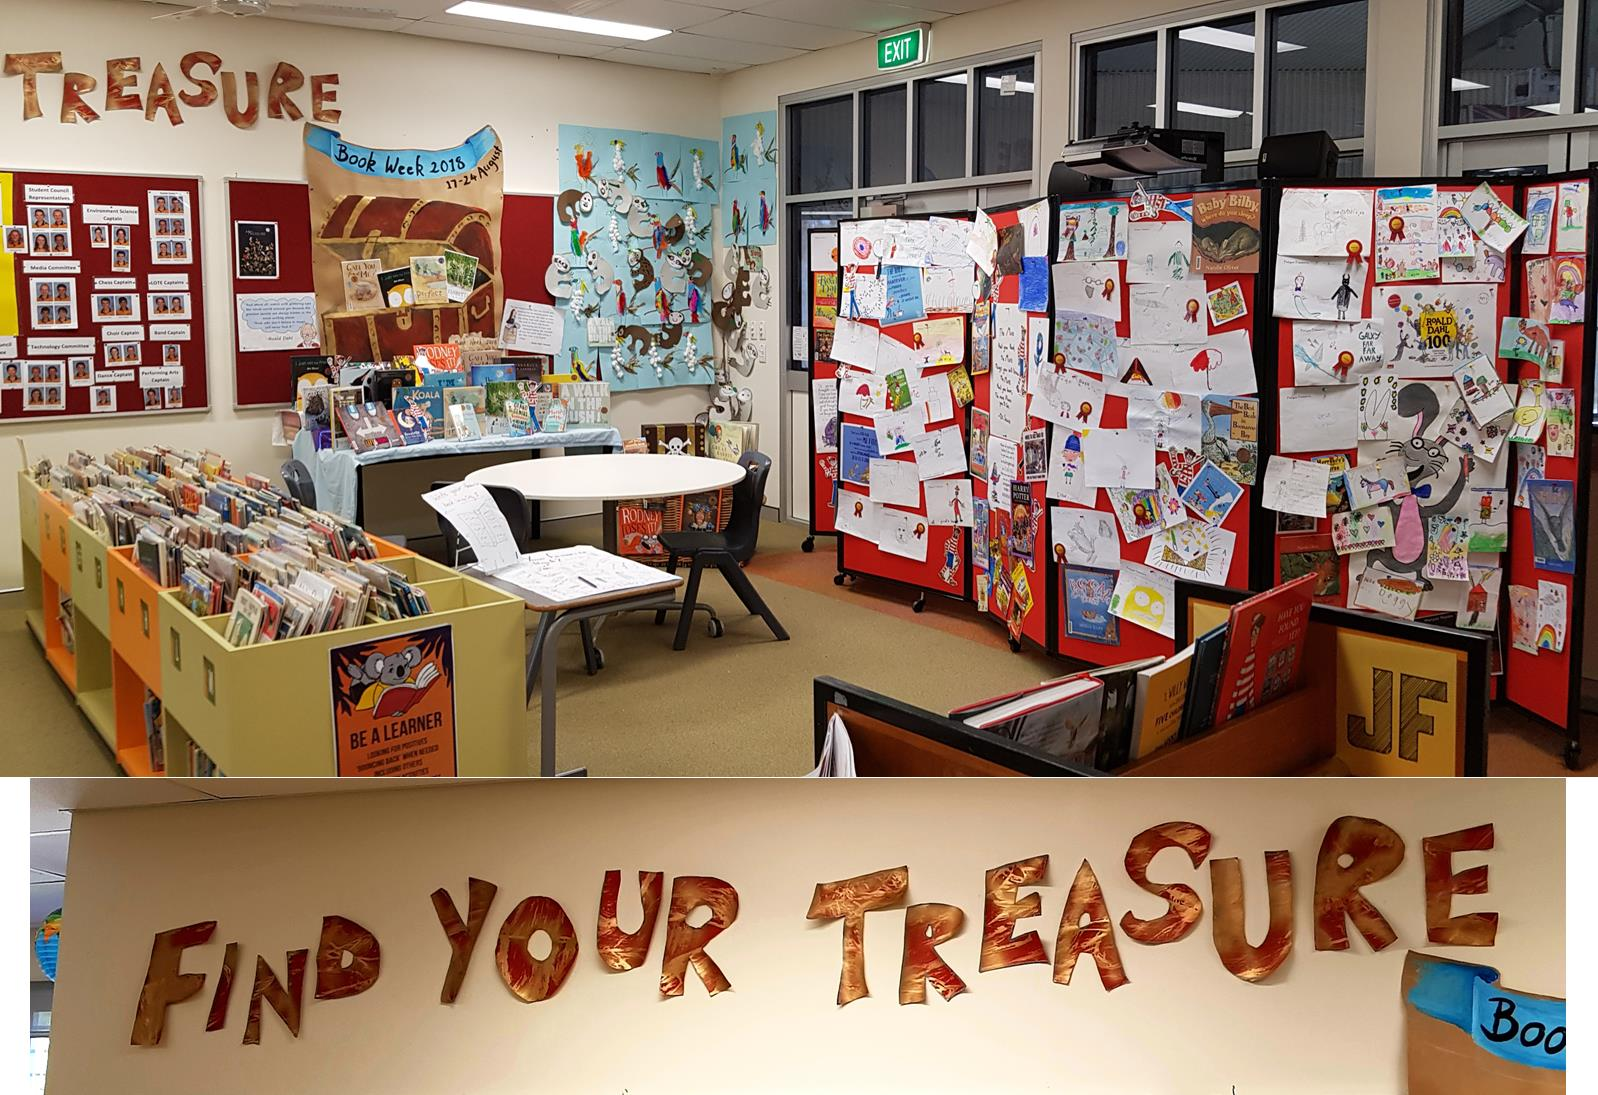 Find Your Treasure Drawing Competition